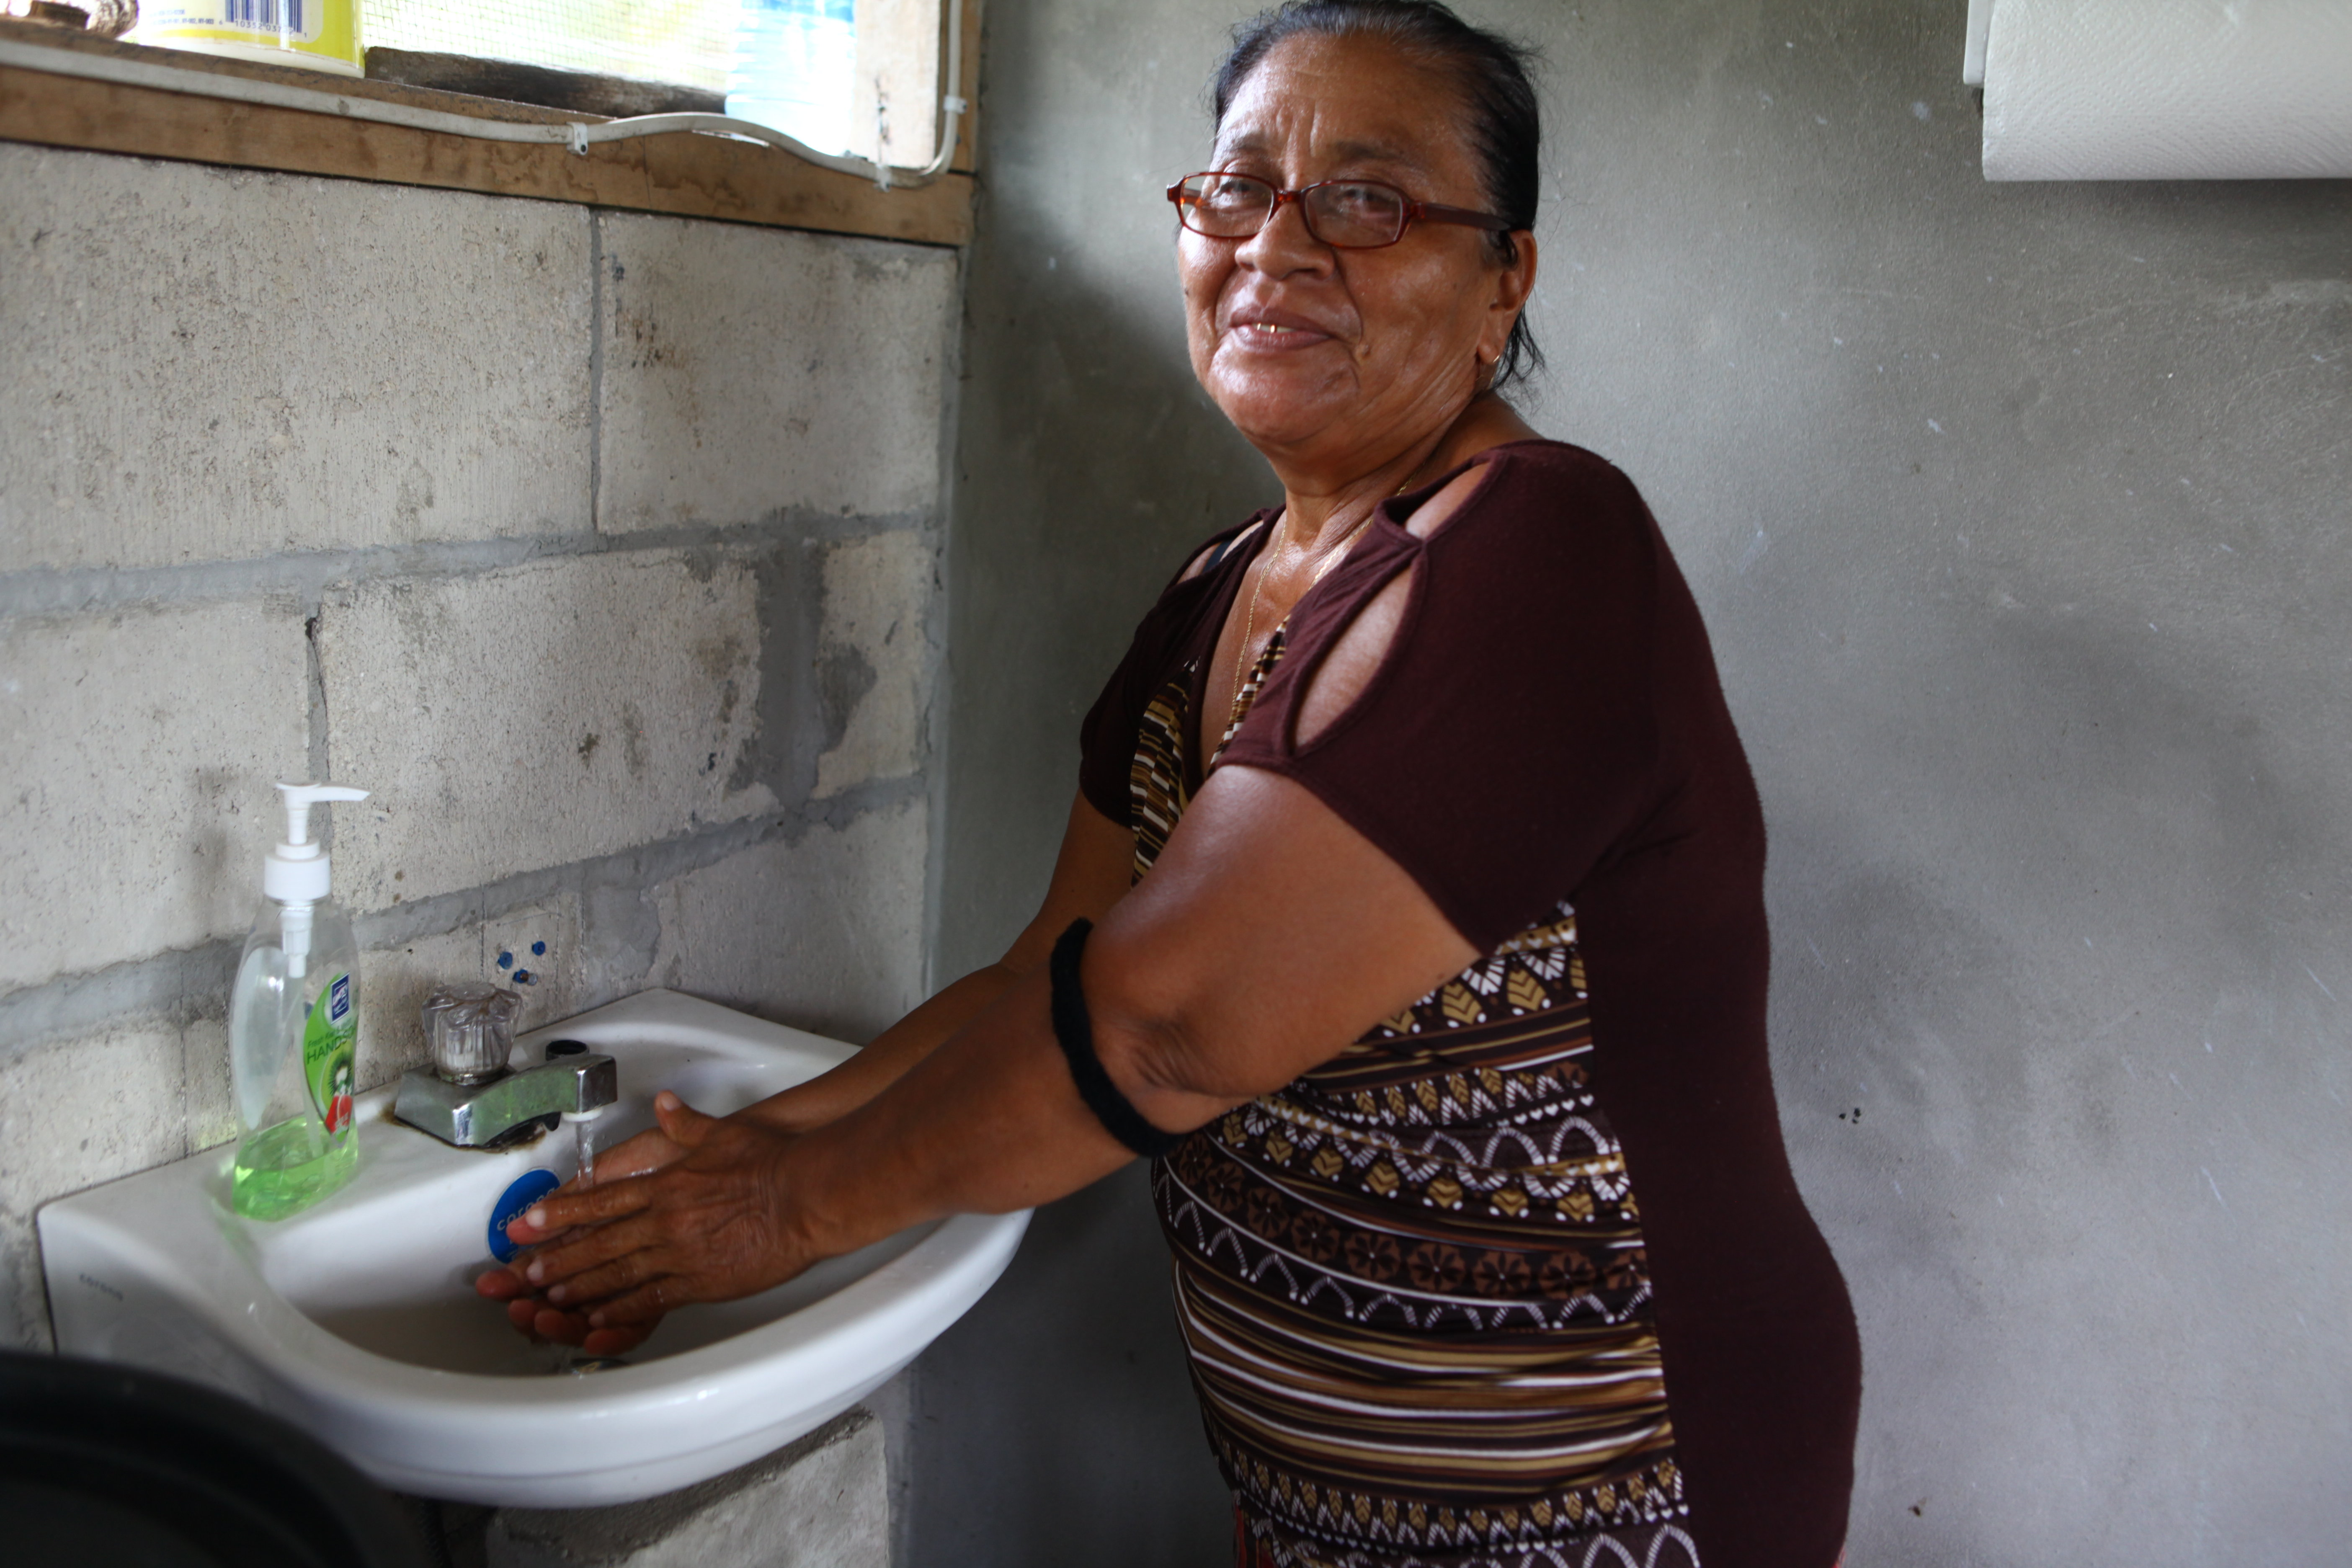 Juanita Banner washes her hands at home